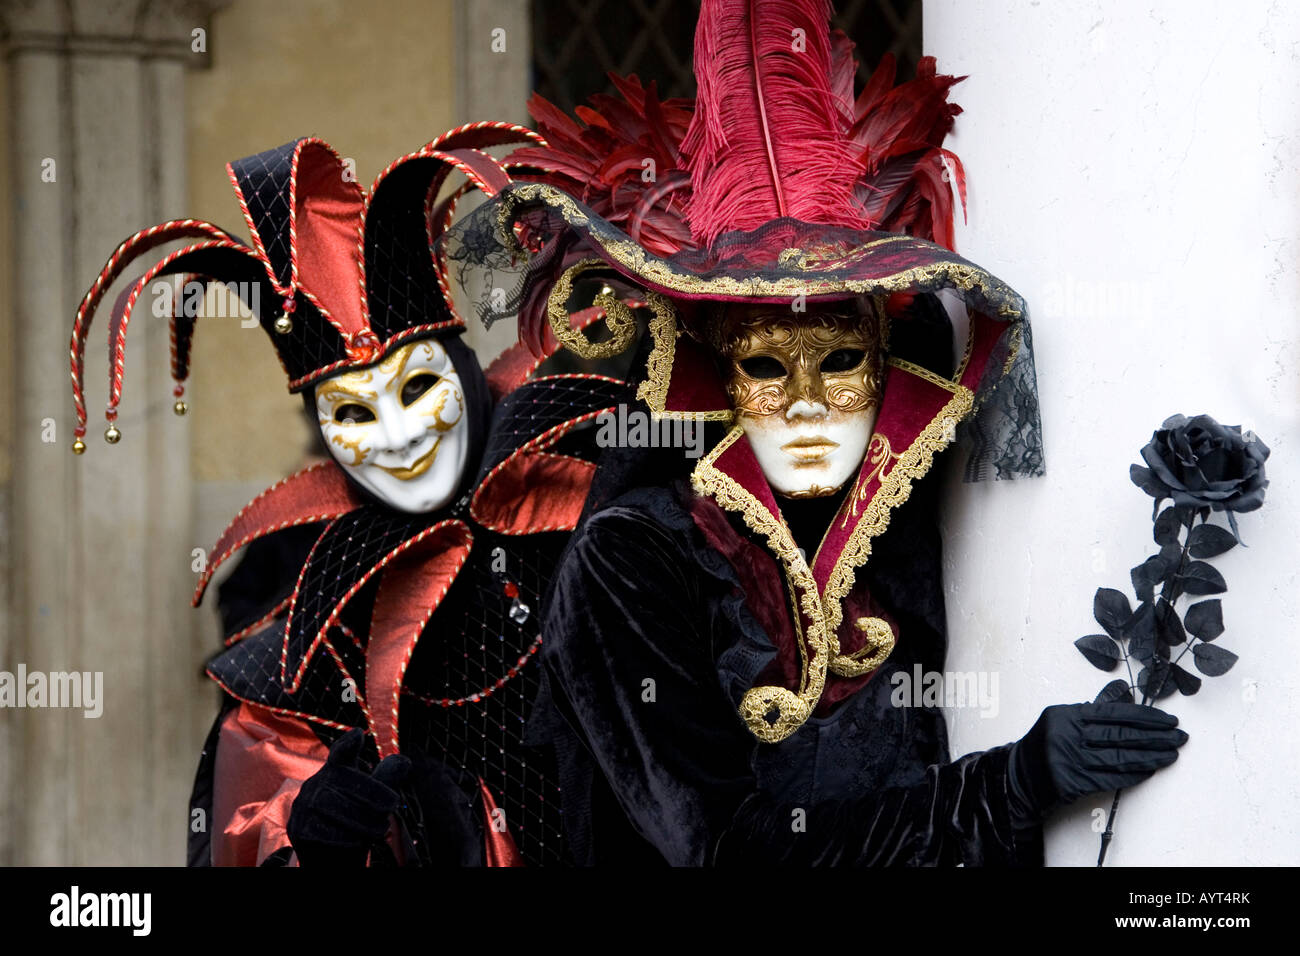 harlequin court jester costume and elegant lady with black rose in